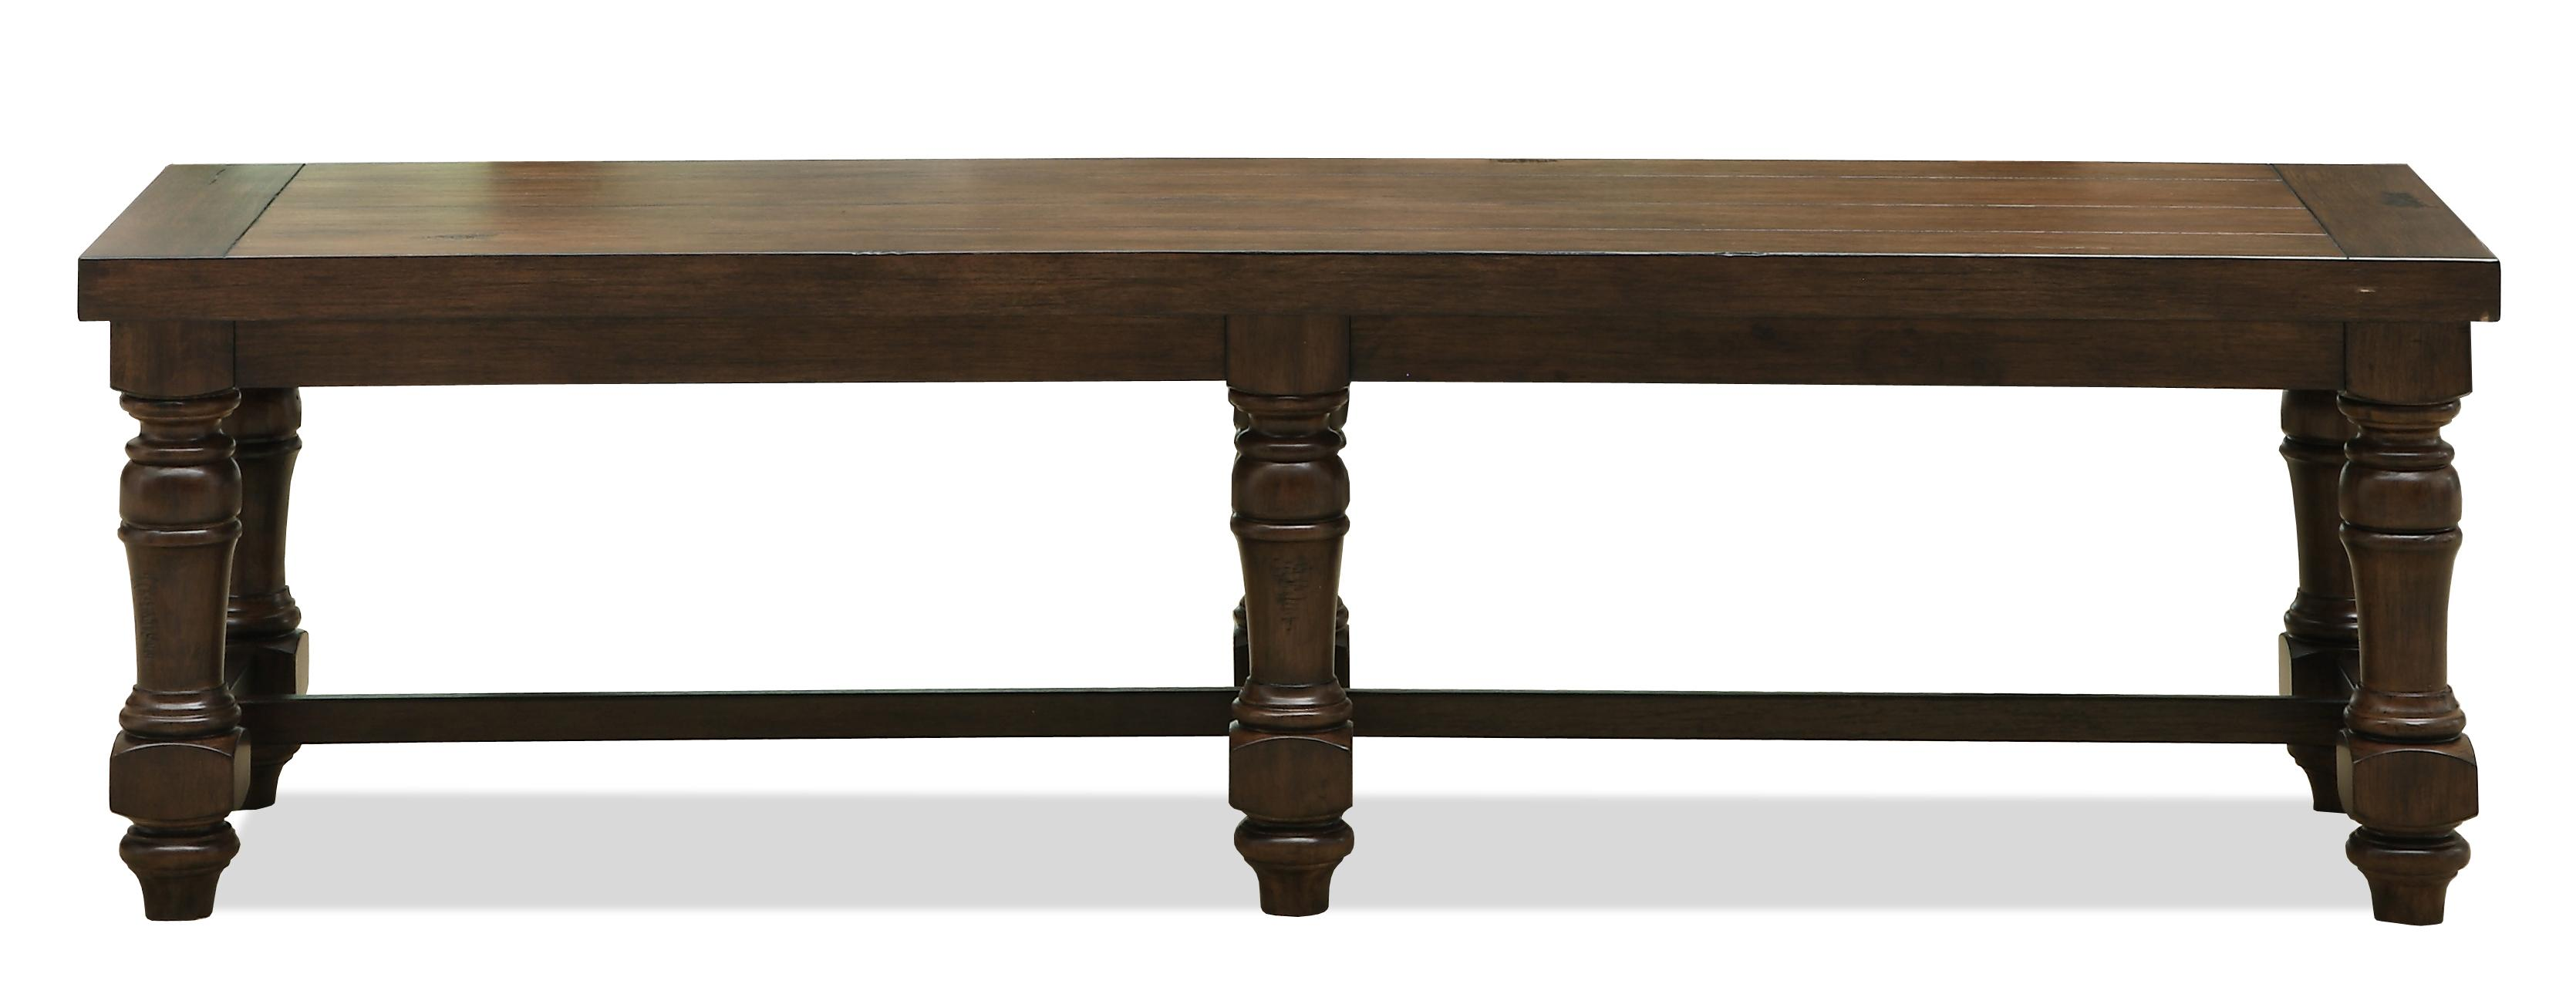 Riverside Furniture Newburgh Traditional Dining Bench - AHFA - Bench ...